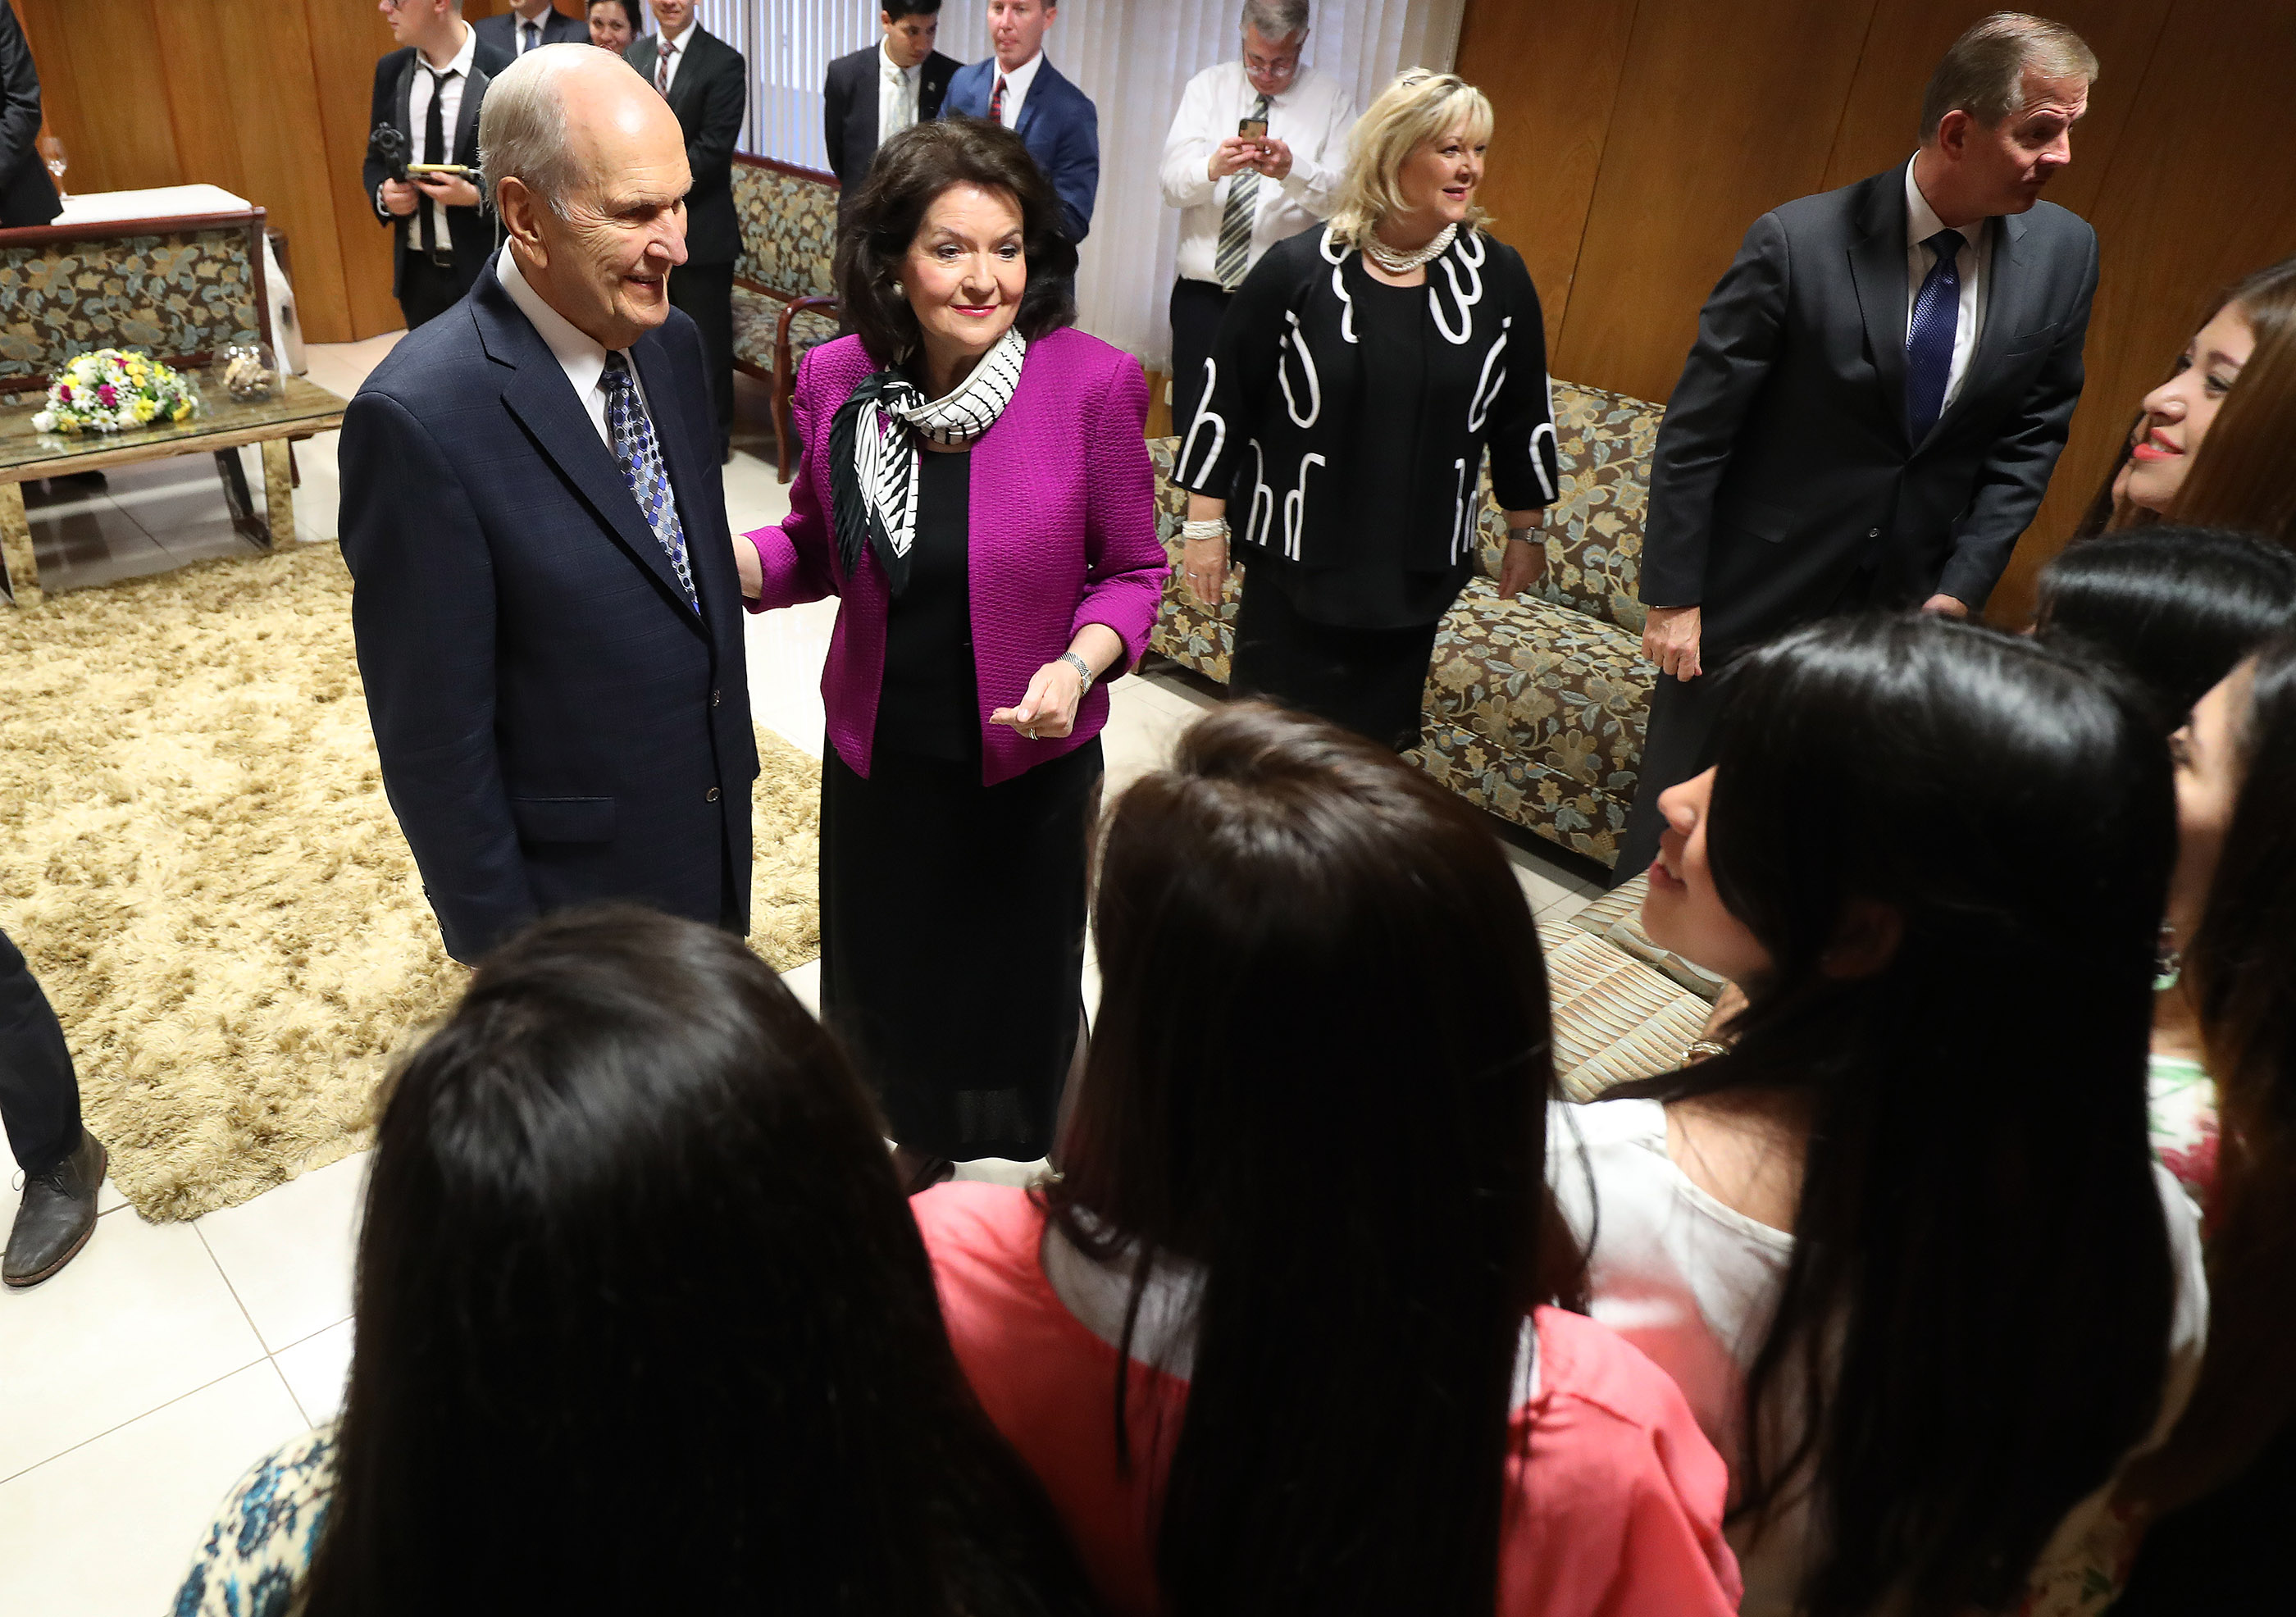 President Russell M. Nelson of The Church of Jesus Christ of Latter-day Saints and his wife, Sister Wendy Nelson, along with Elder Gary E. Stevenson, of the Quorum of the Twelve Apostles and his wife, Sister Lesa Stevenson, talk with youth prior to a devotional in Asuncion, Paraguay, on Monday, Oct. 22, 2018.